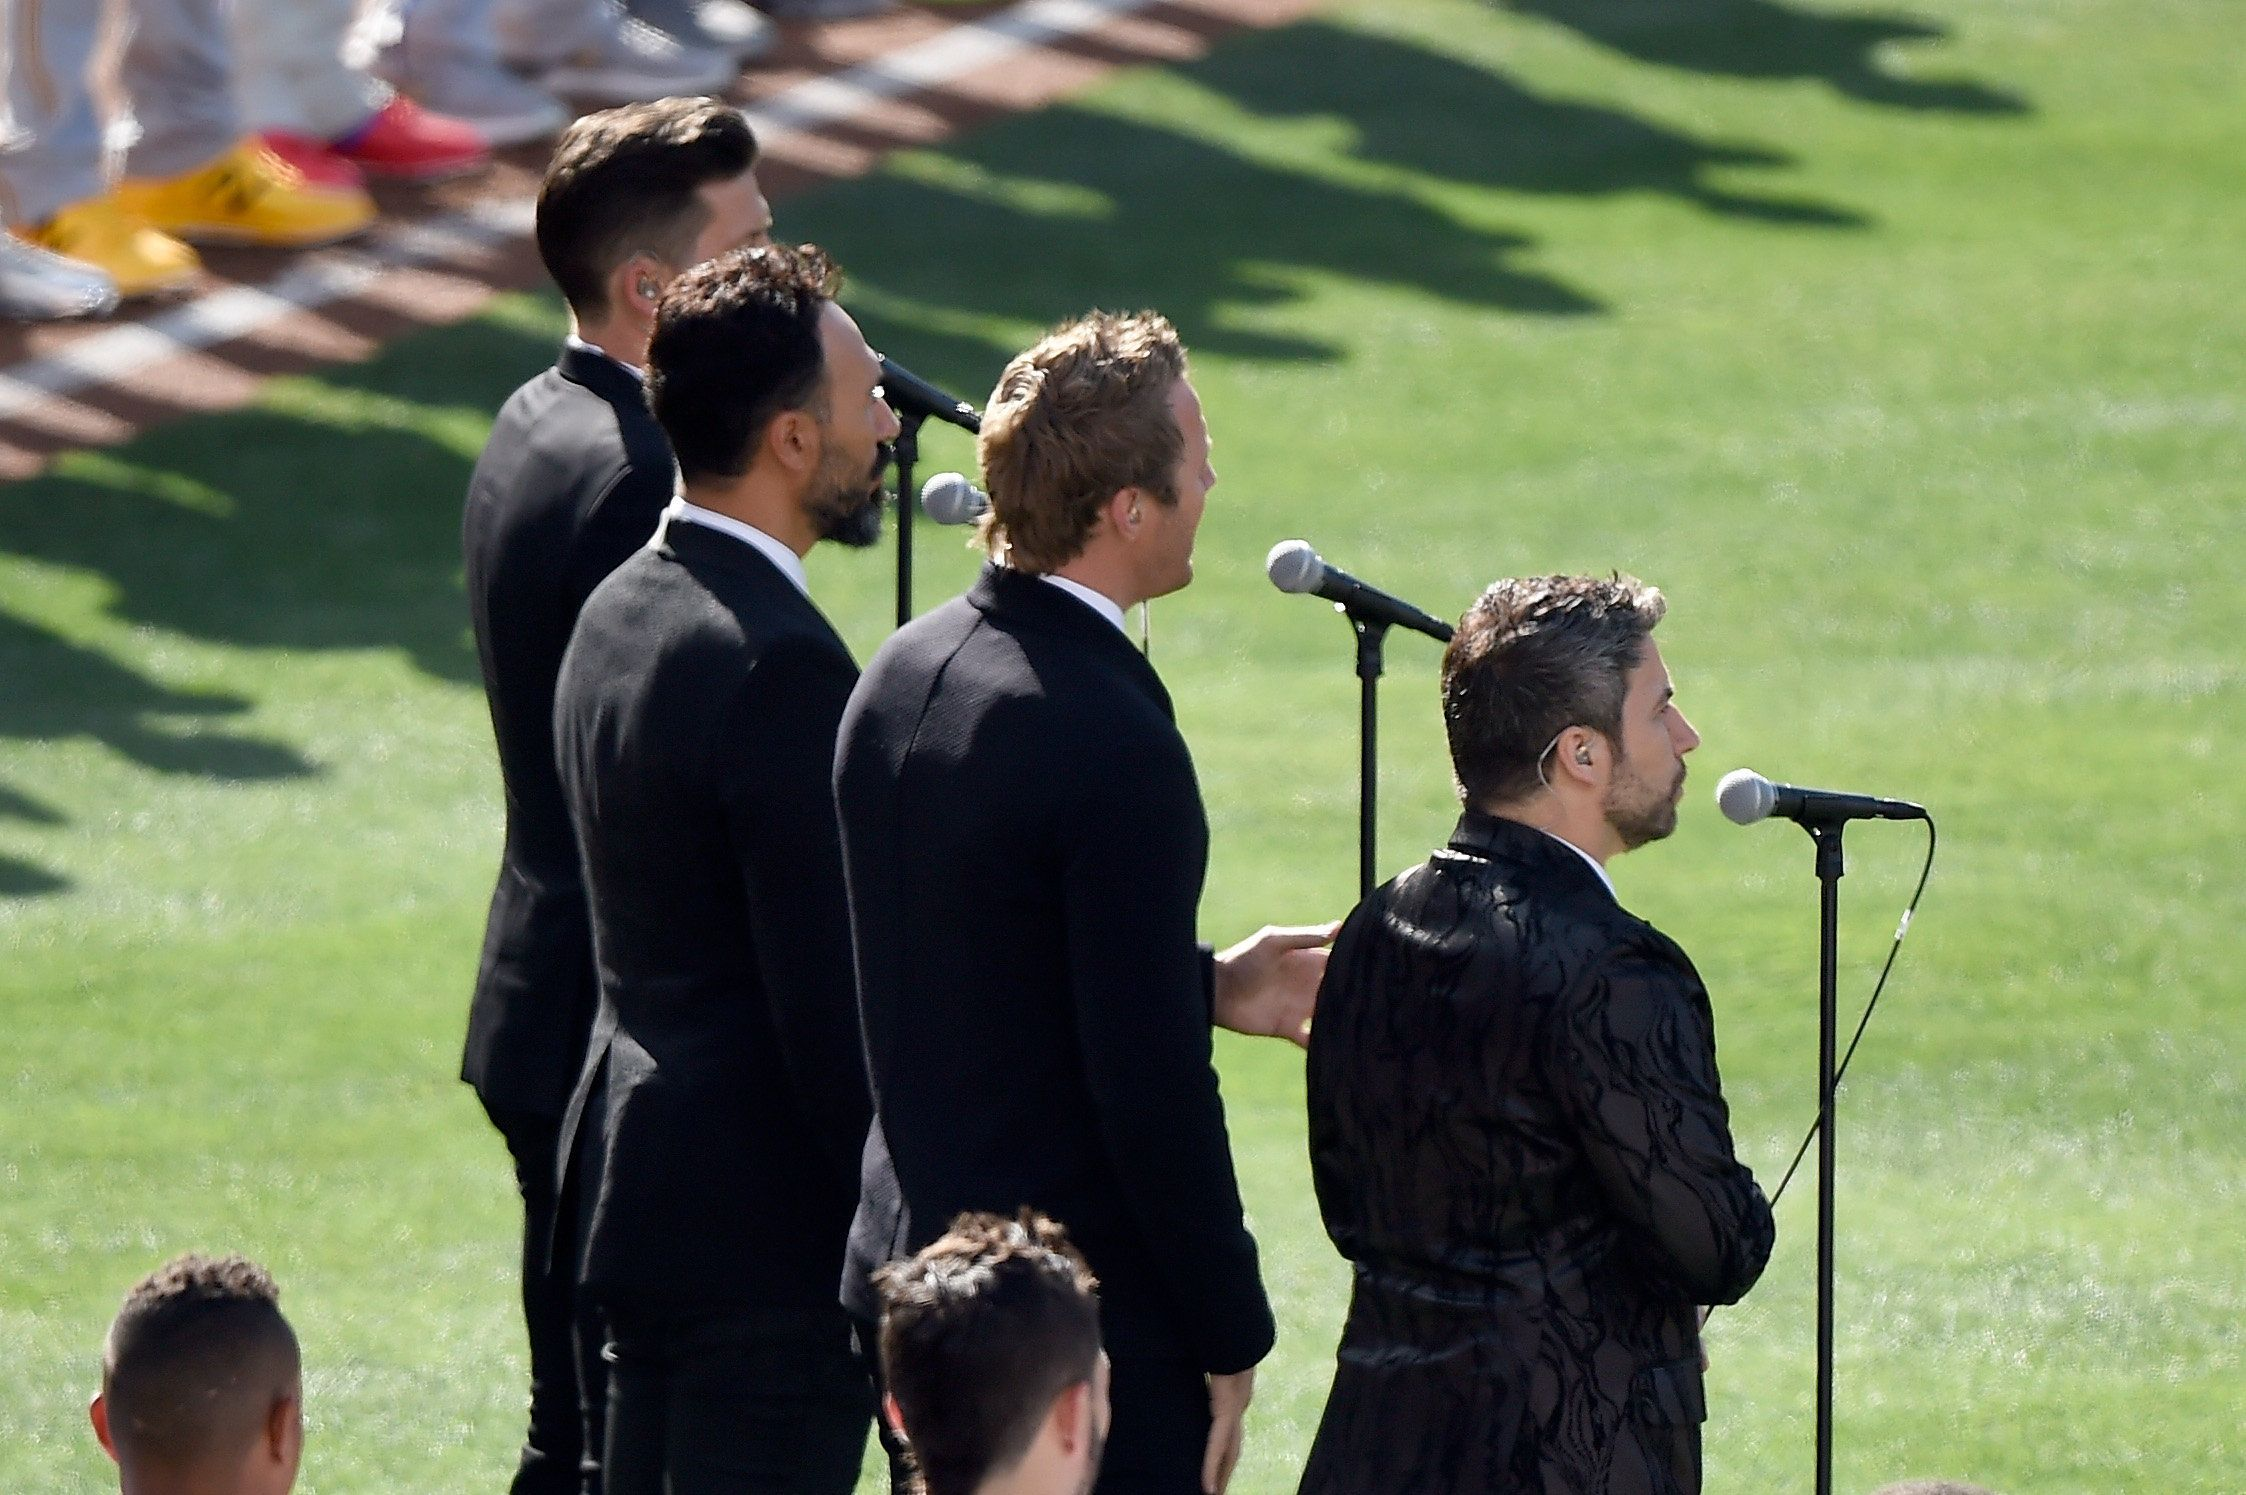 SAN DIEGO, CA - JULY 12:  The Tenors, musicians based in British Columbia, perform 'O Canada' prior to the 87th Annual MLB All-Star Game at PETCO Park on July 12, 2016 in San Diego, California.  (Photo by Denis Poroy/Getty Images)